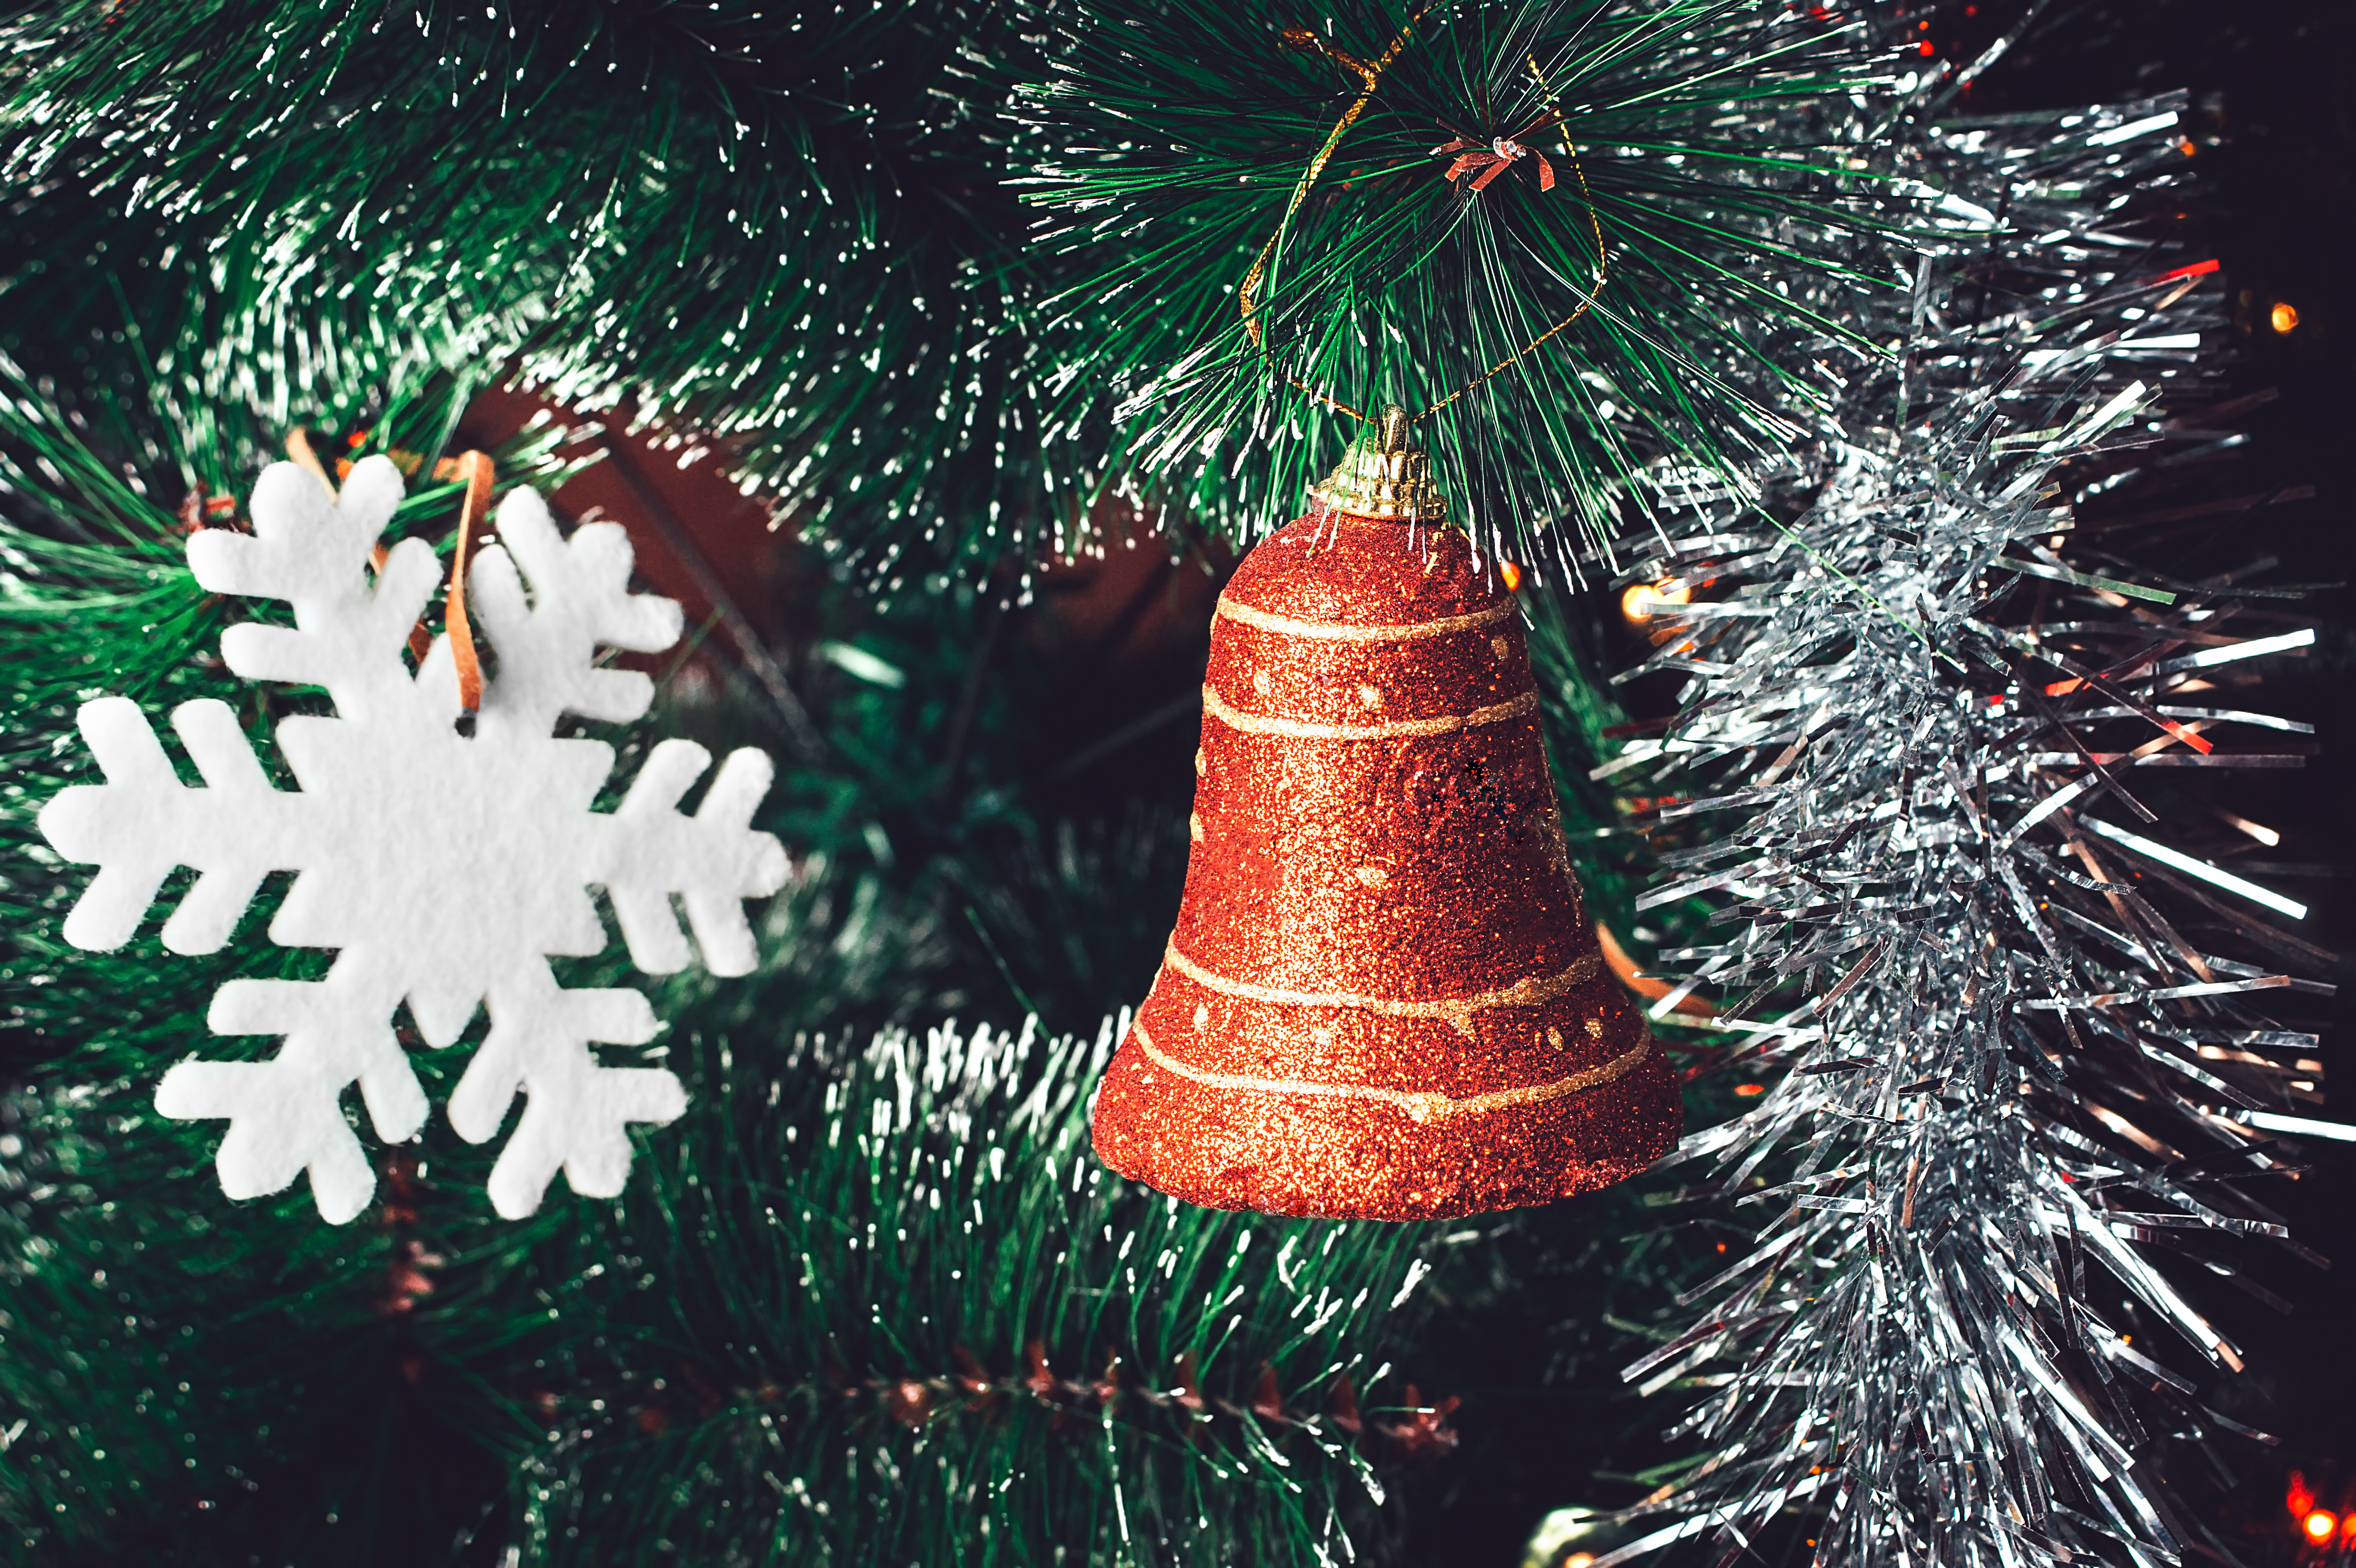 Christmas Tree Decorations: Red Orange Bell, White Snowflake, Shining Silver Tinsel on Green Needles with White Tips. Happy New Year and Christmas Concept.